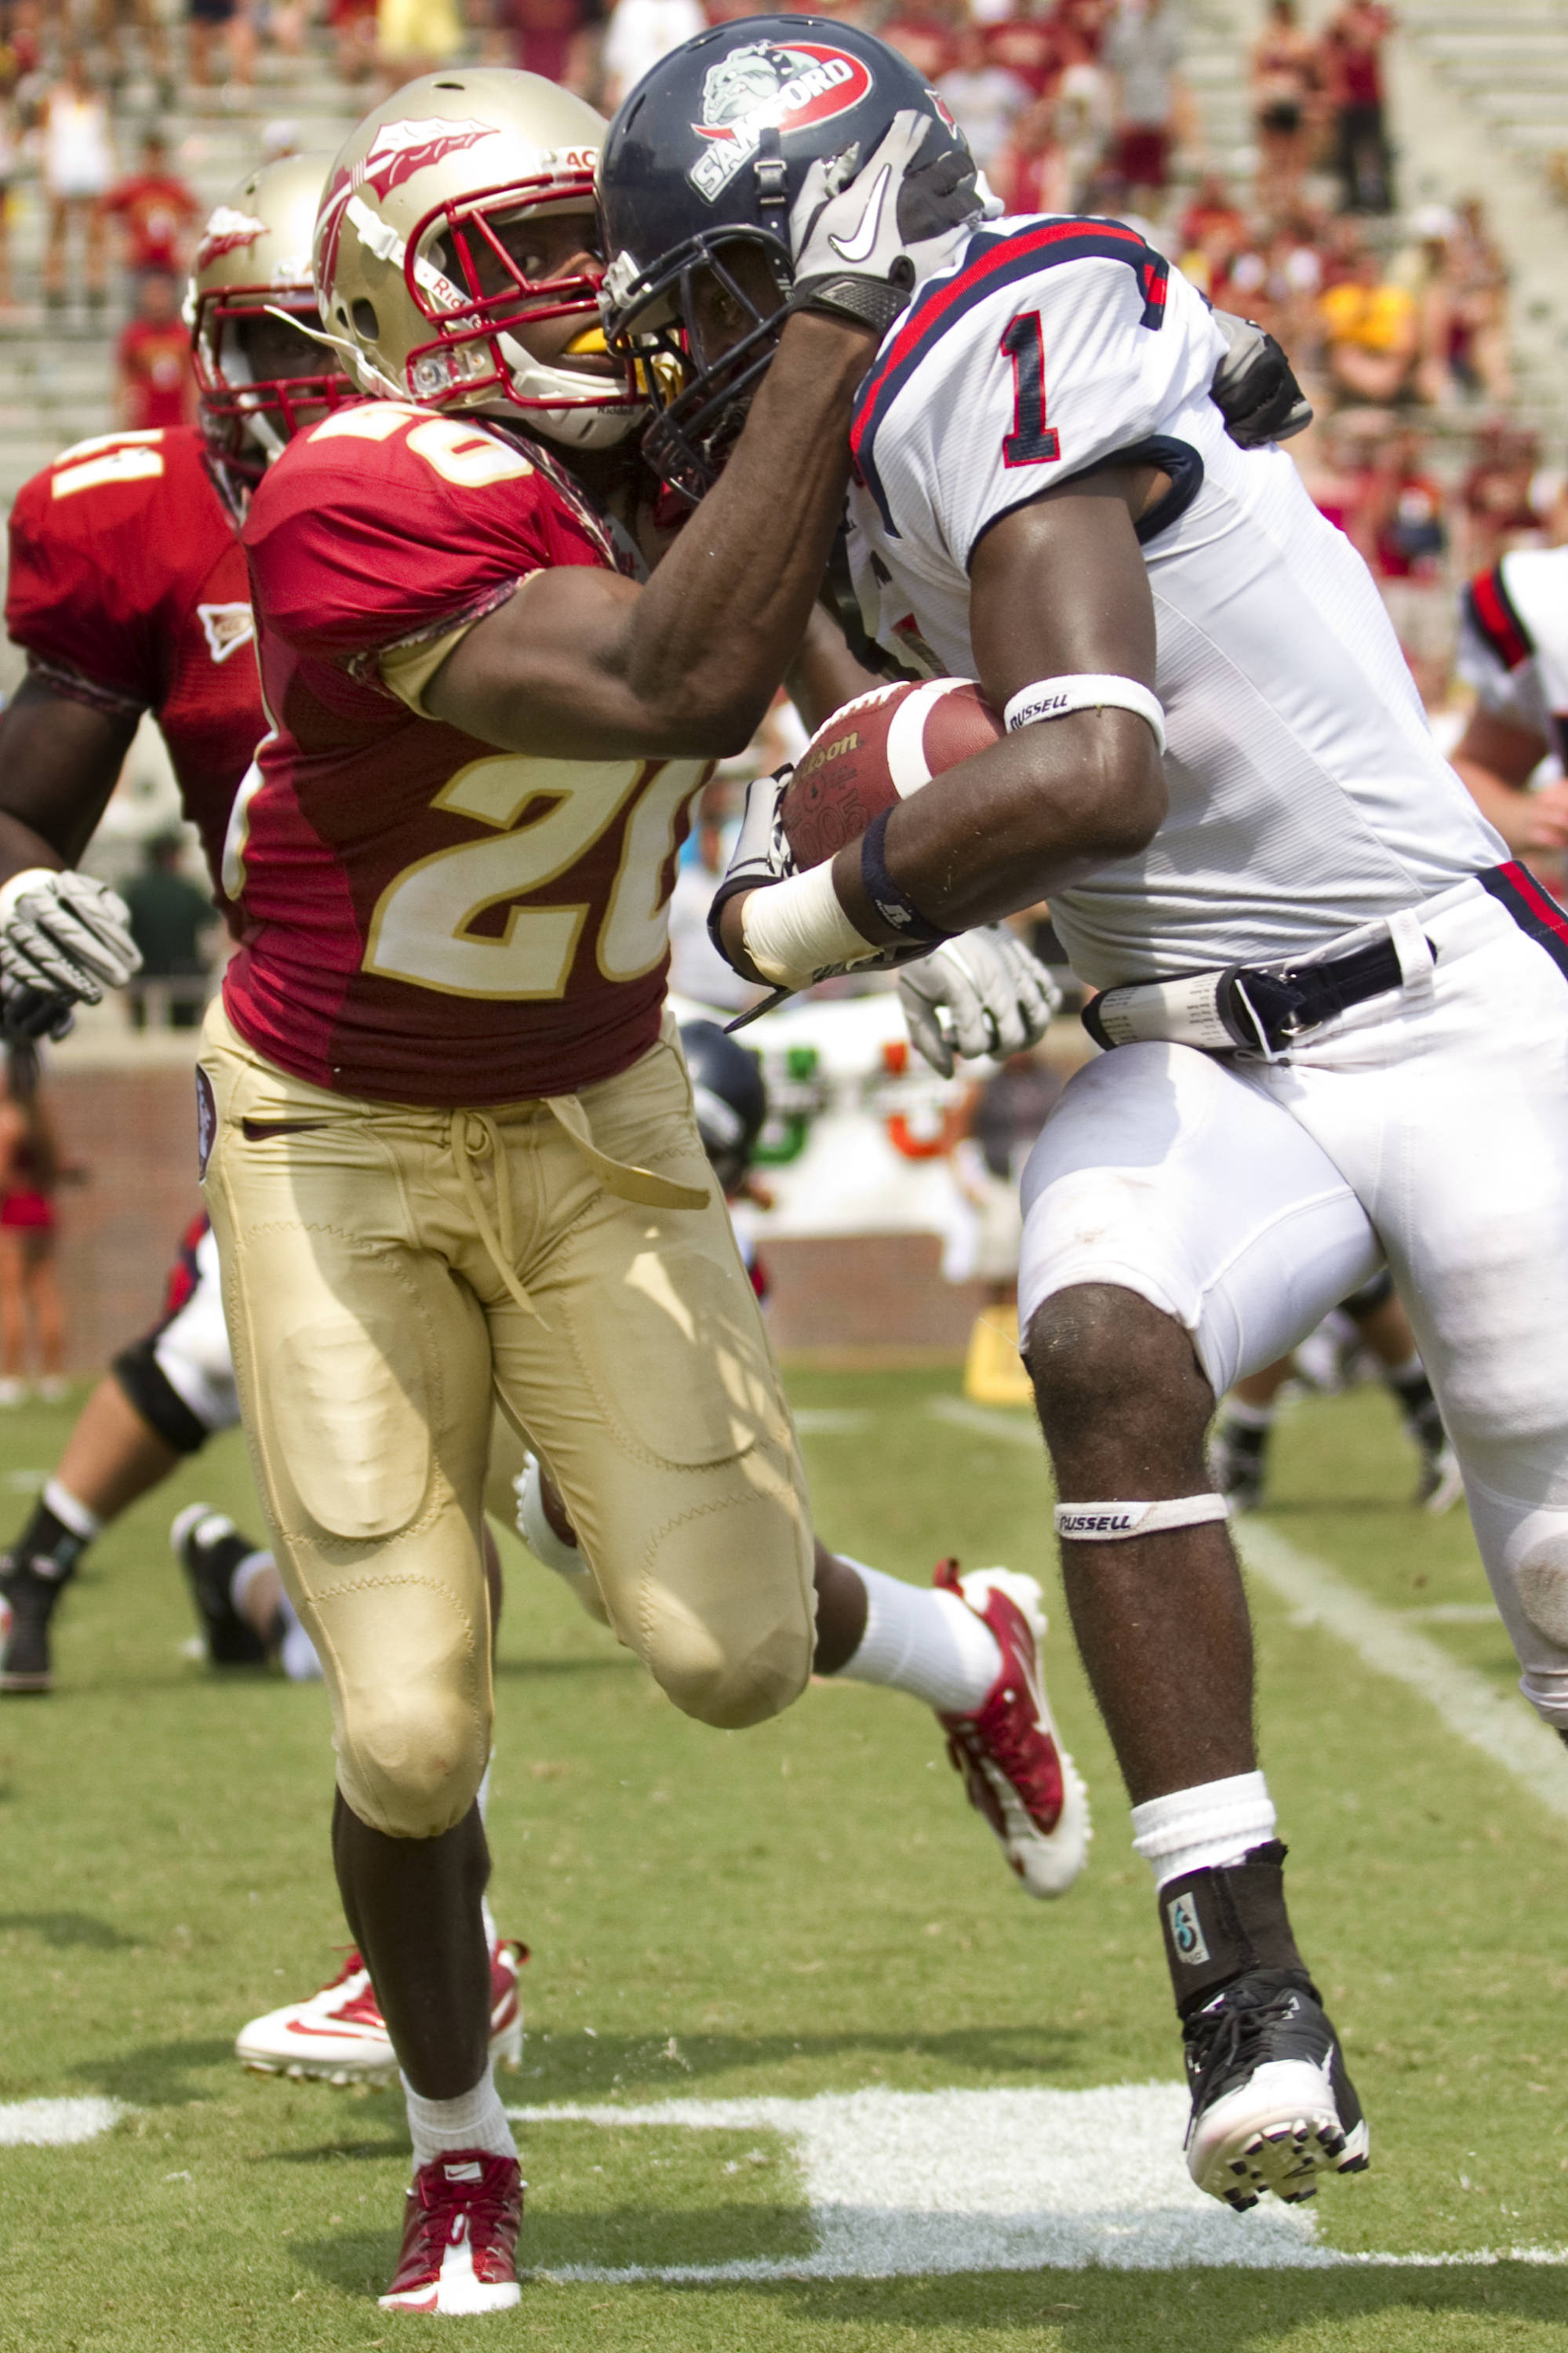 Lamarcus Joyner (20) pulls the ball carrier for Samford out of bounds in the last quarter.